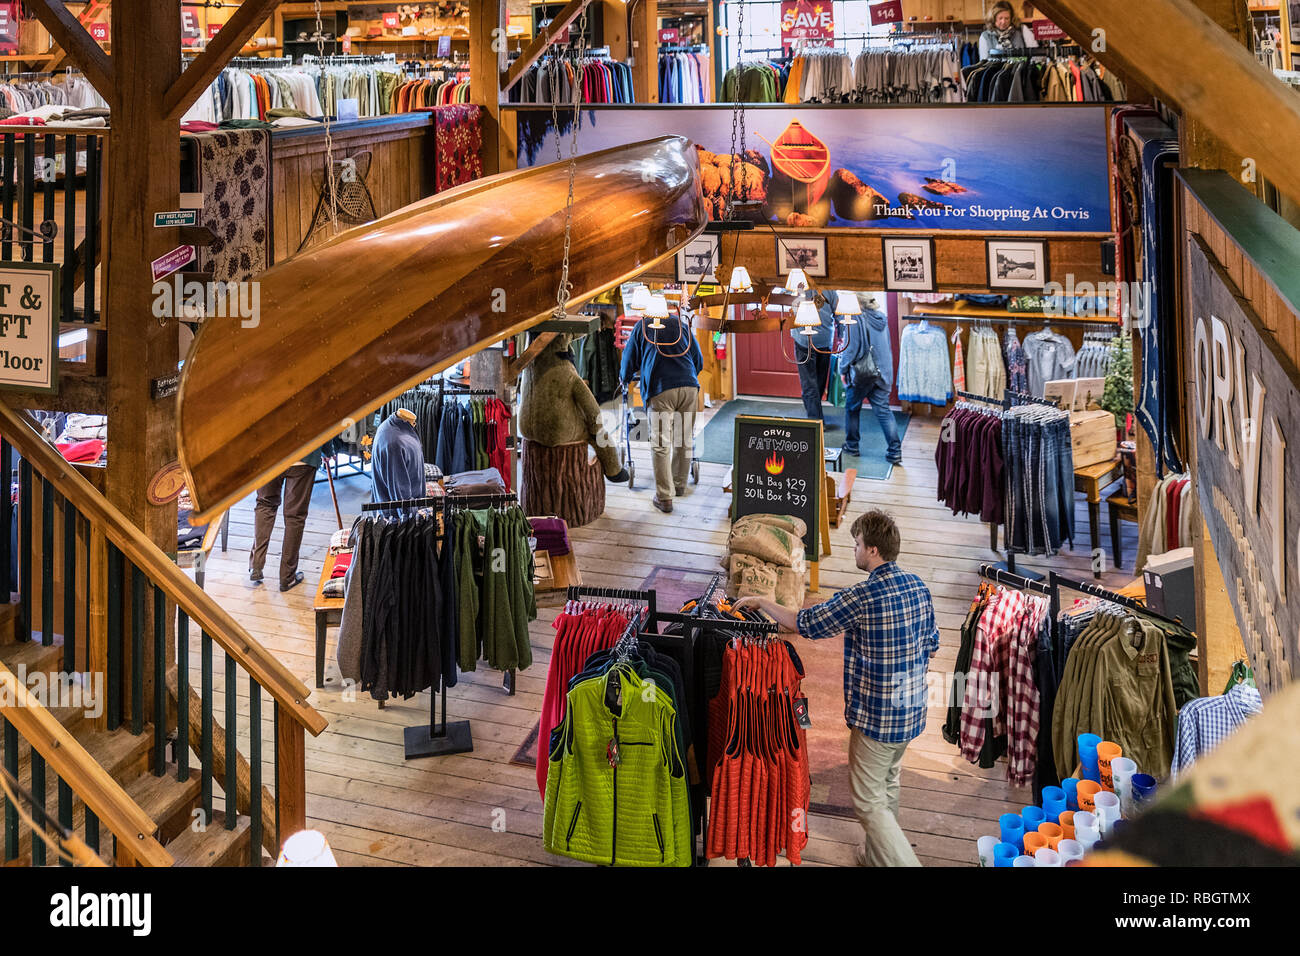 The Orvis flagship store, Manchester, Vermont, USA. - Stock Image